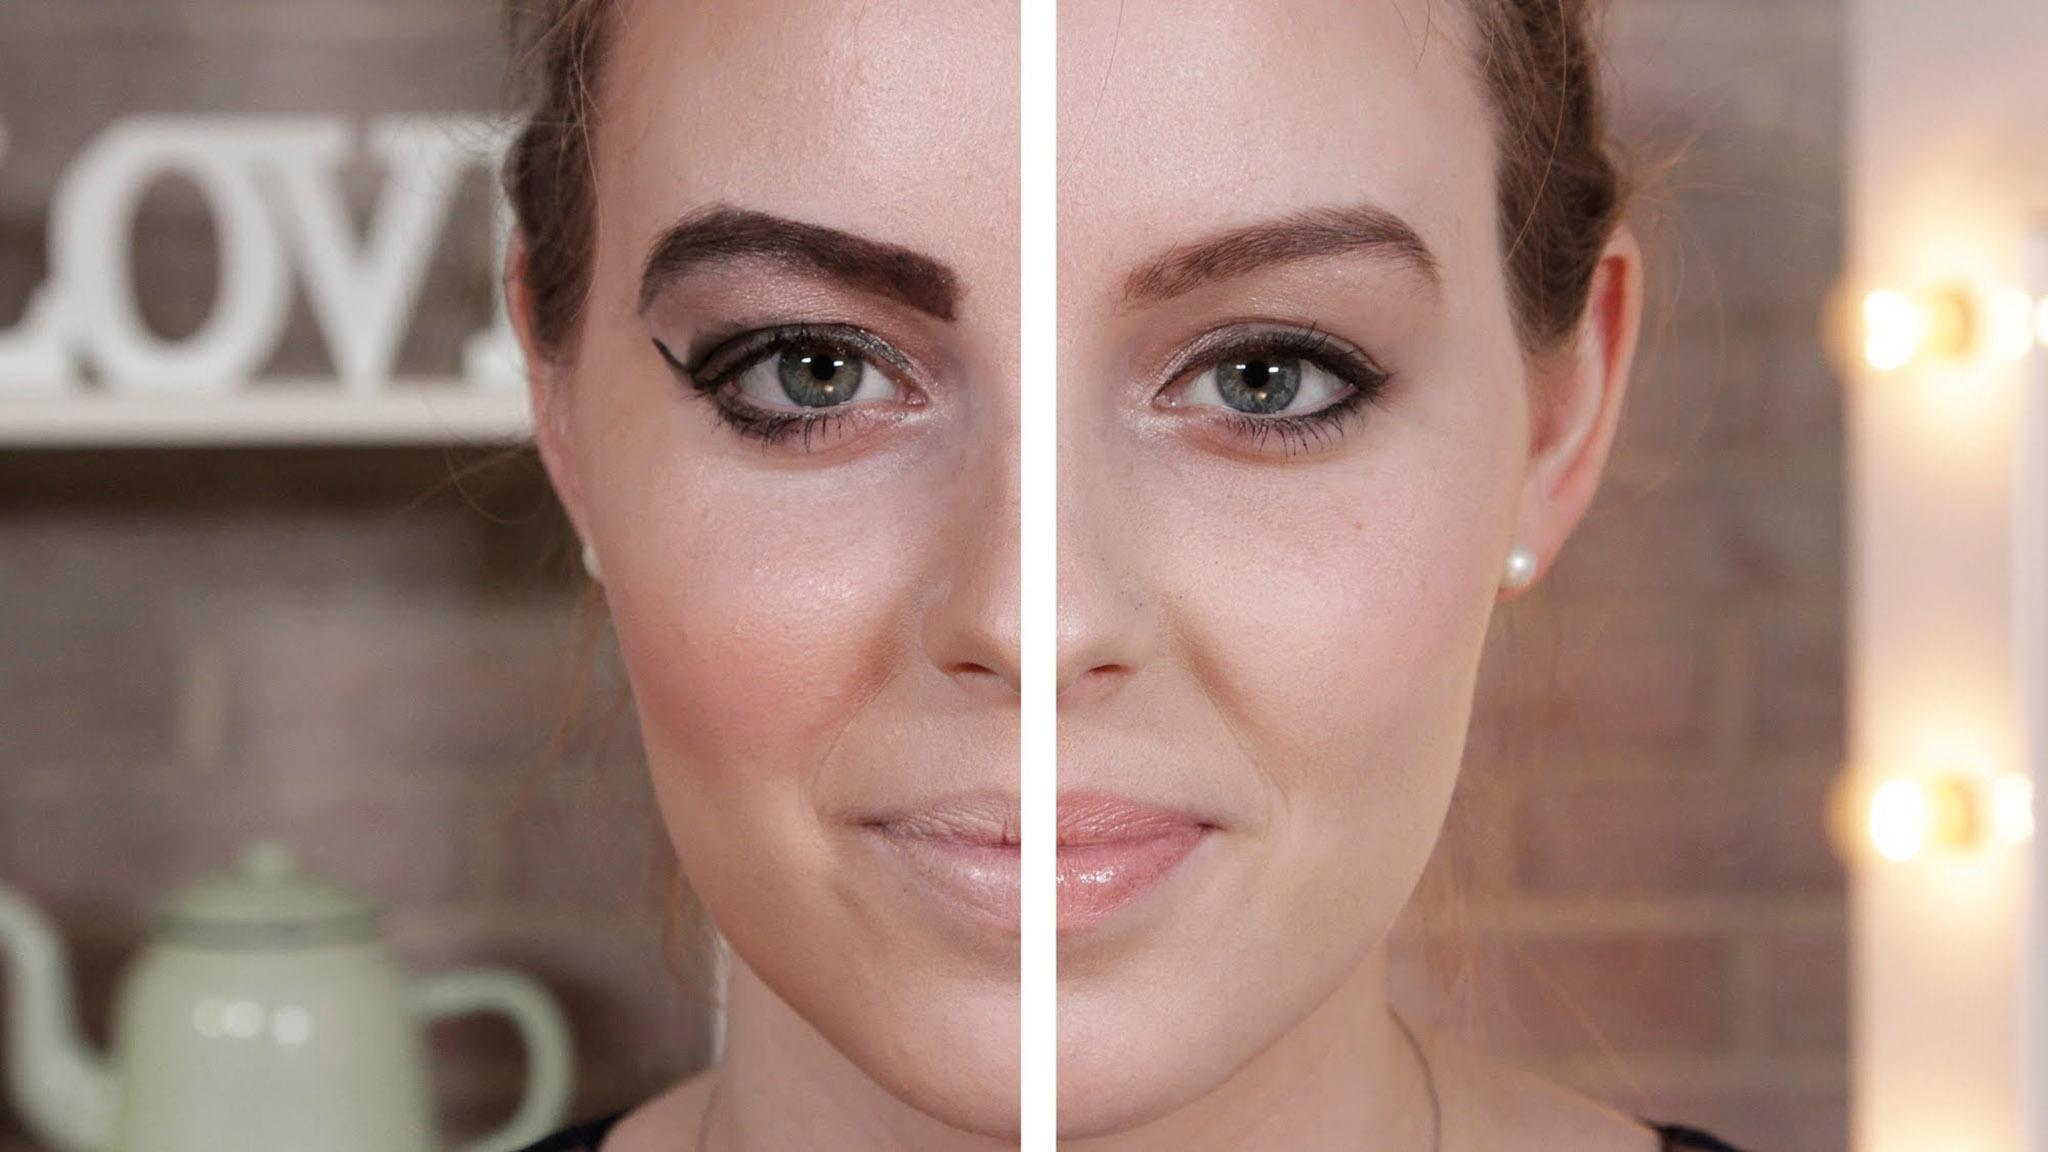 These 15 Common Makeup Mistakes That Will Make You Look Older